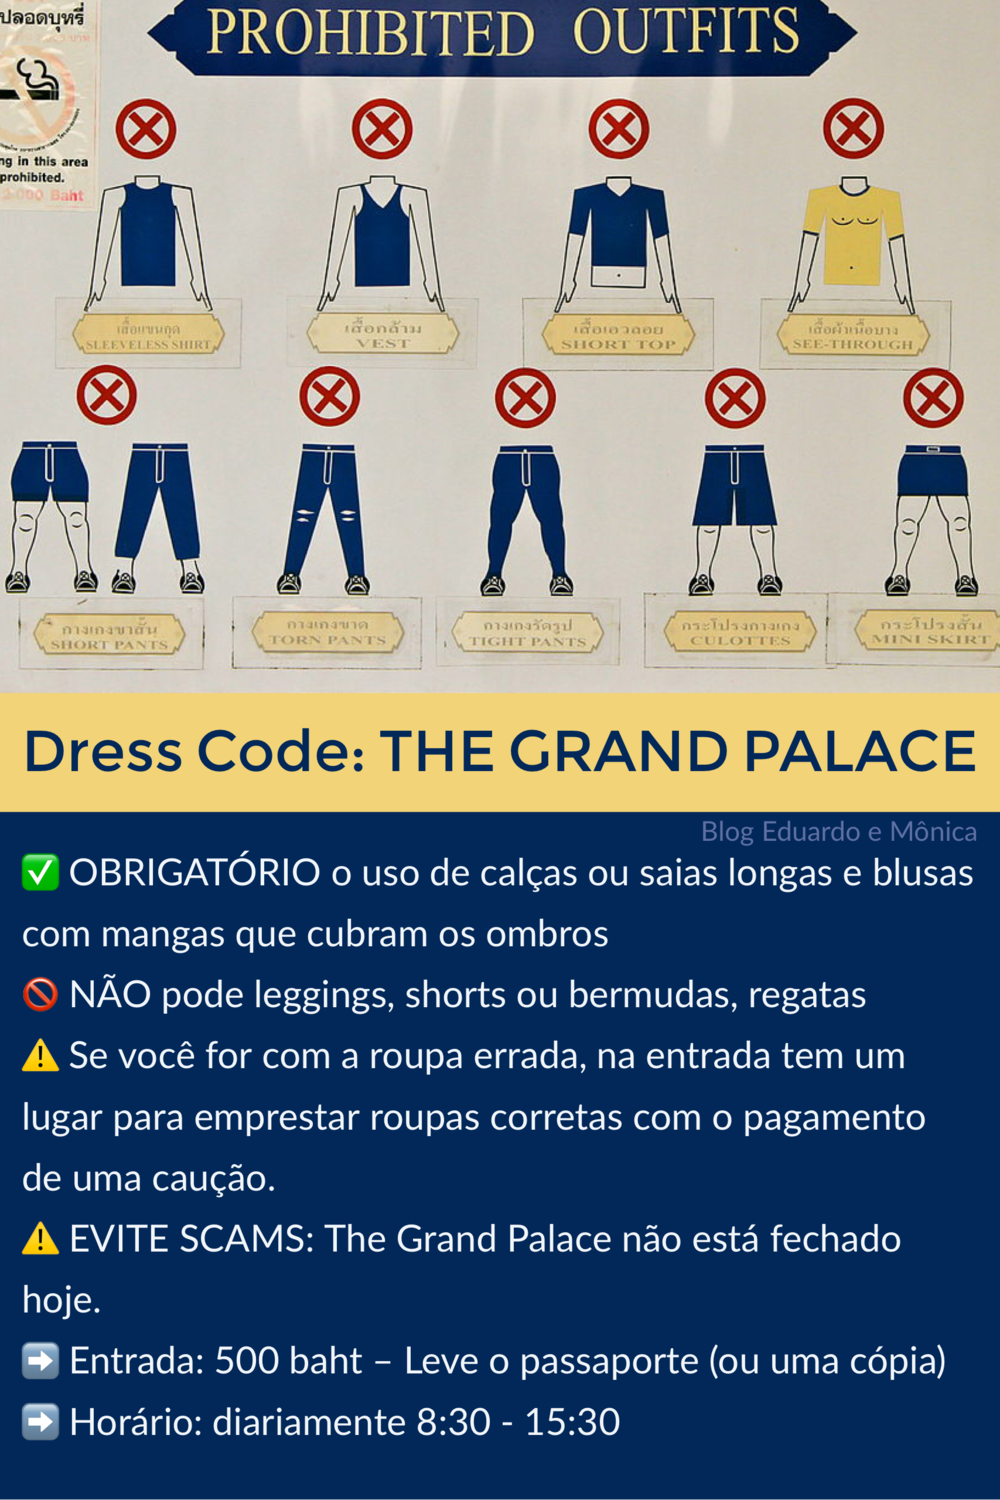 Dress Code para o Grand Palace